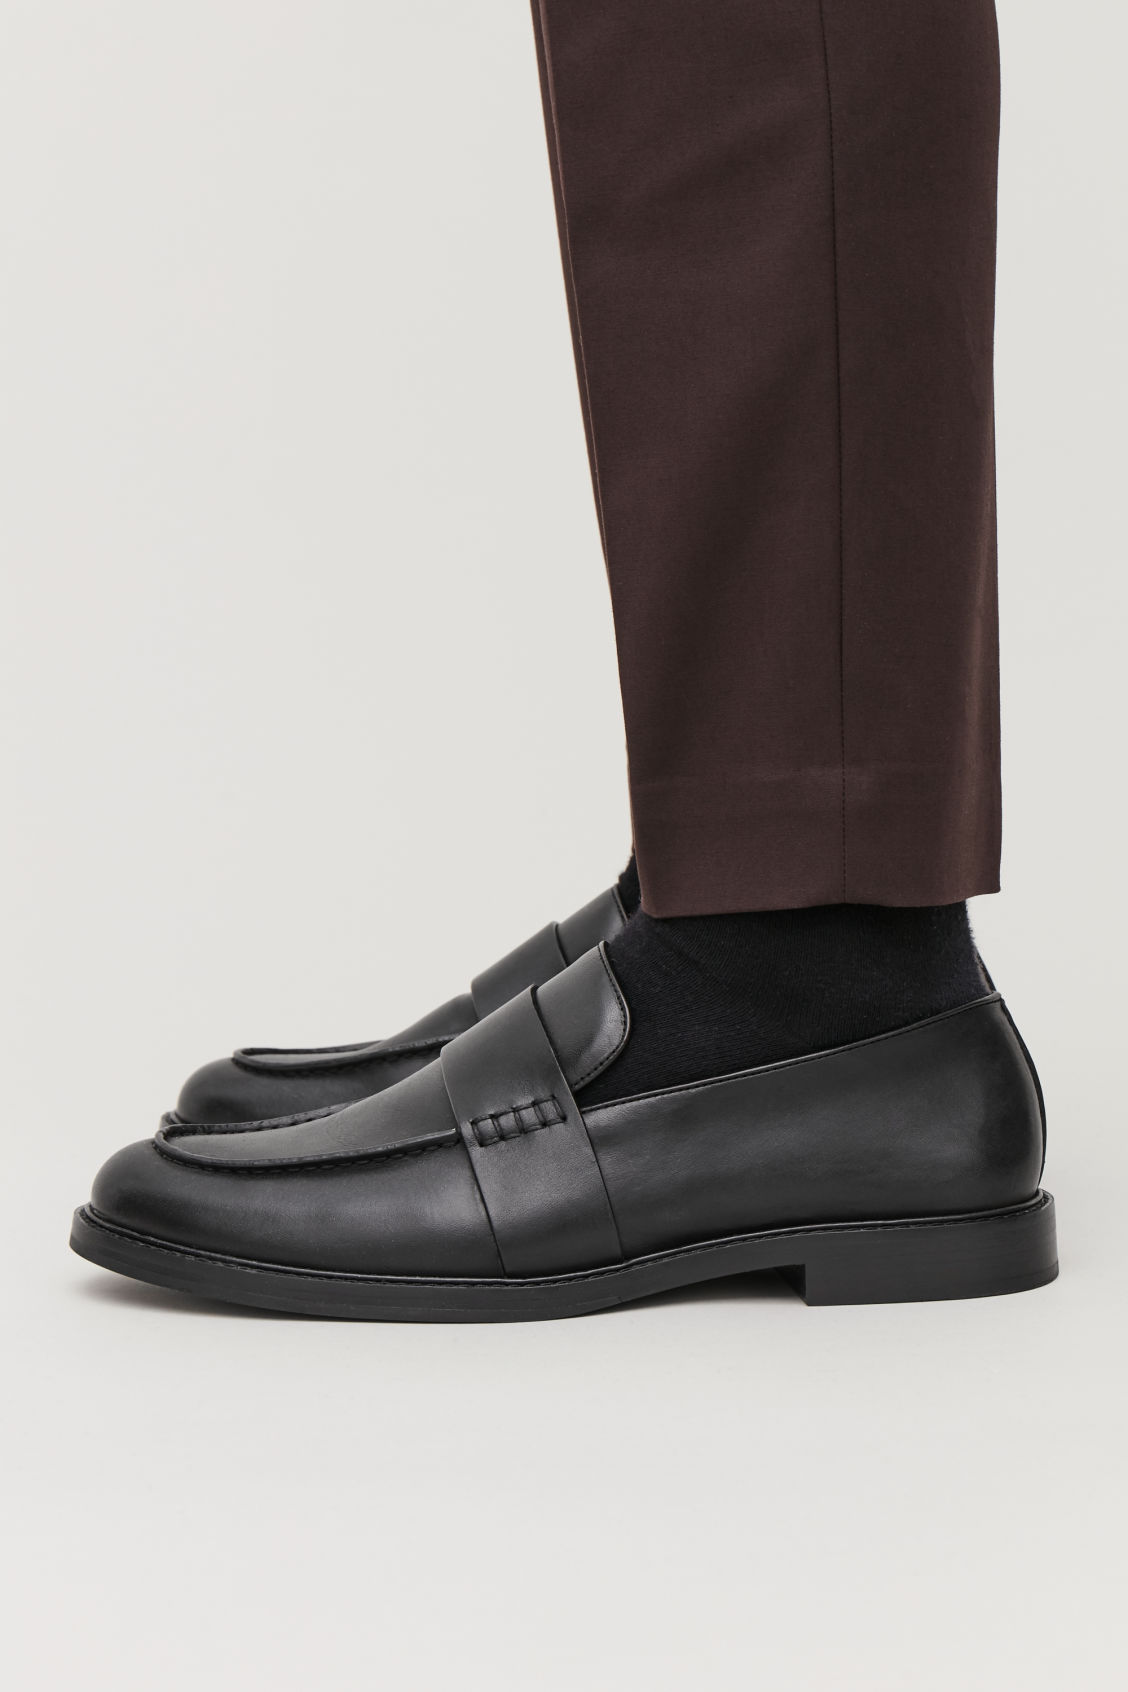 b0985d3560228 Detailed image of Cos leather penny loafers in black